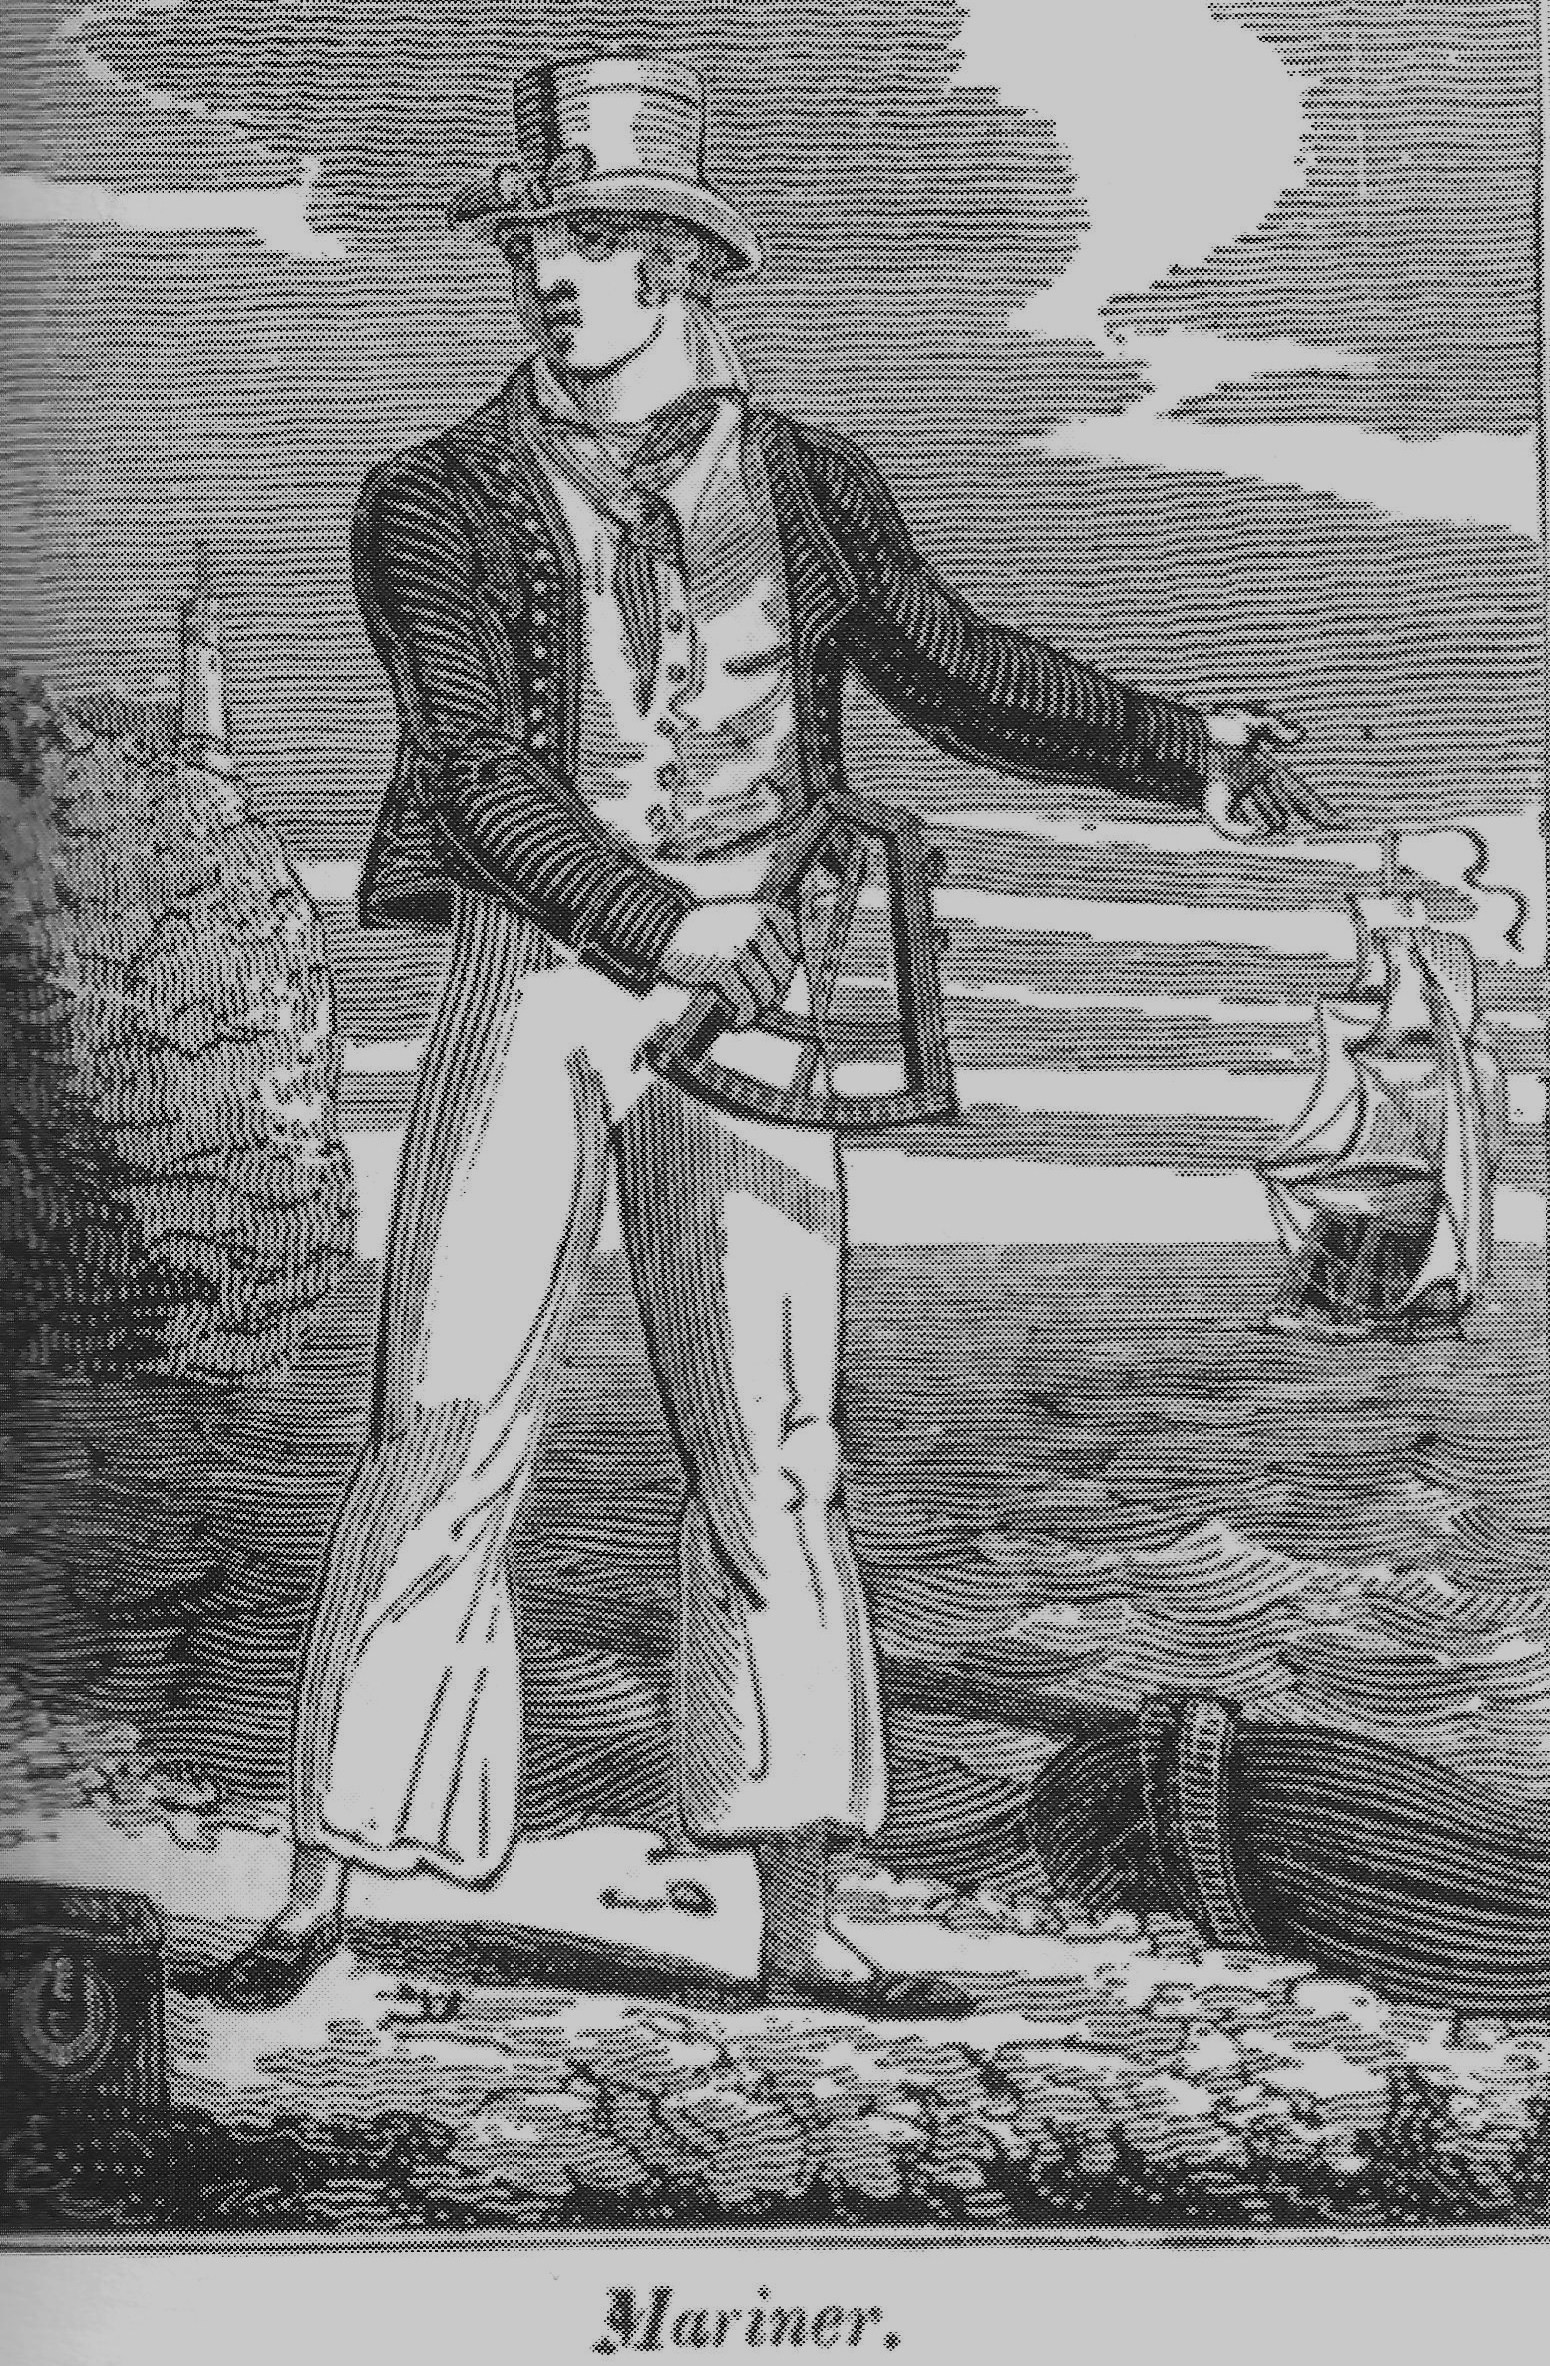 Great Great Great Grandfather William Wright's (1800-1861) occupation is listed as a Mariner (Milford Haven-Pembrokeshire)